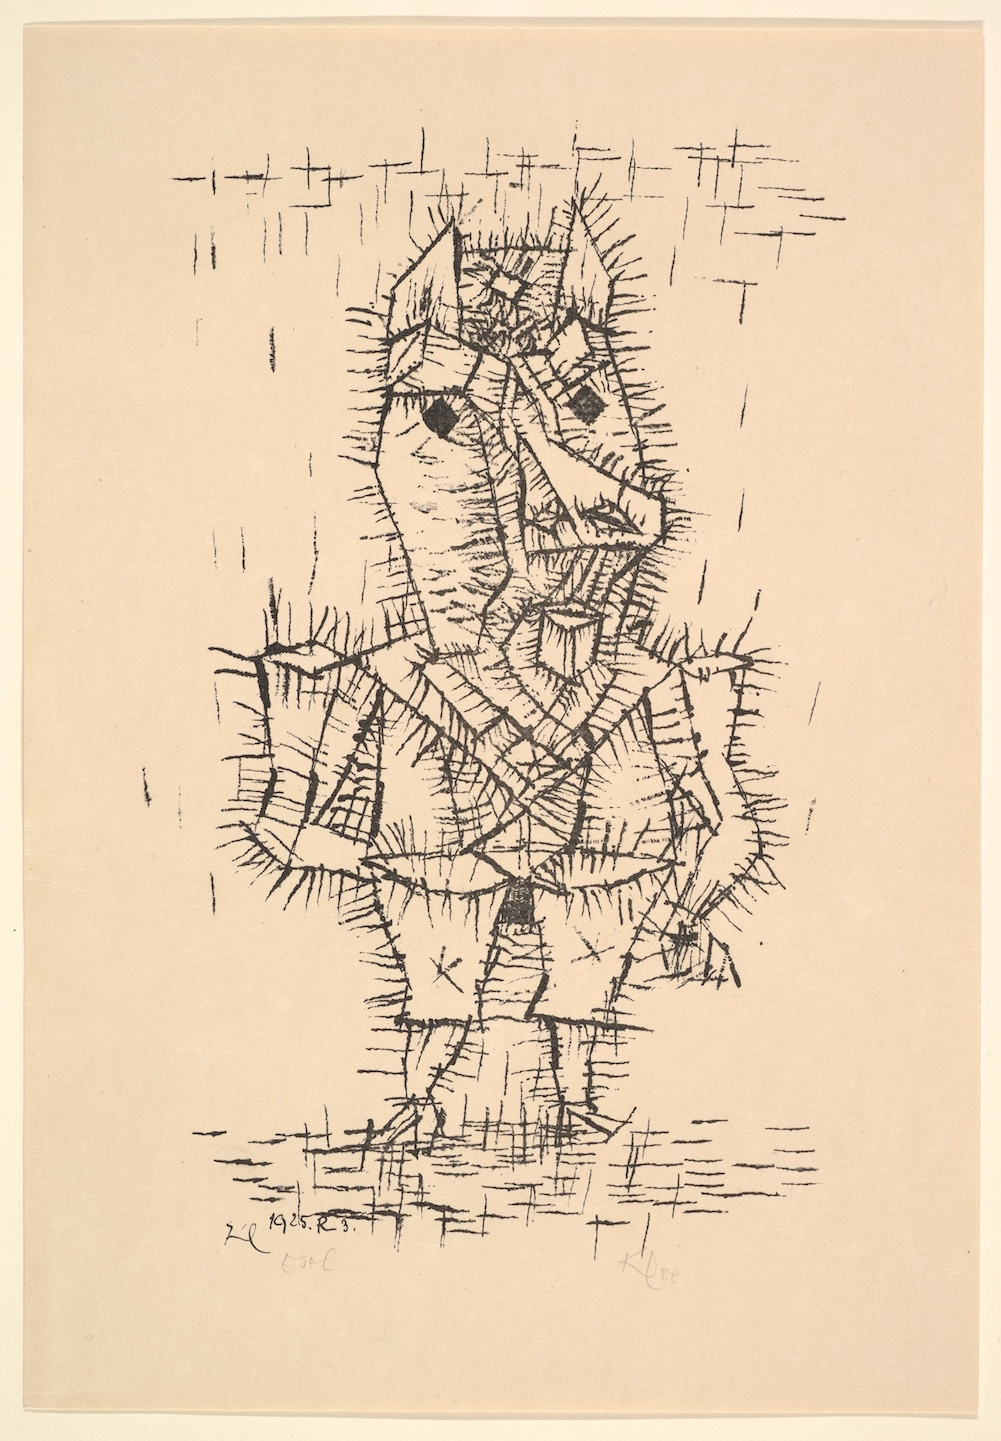 Paul Klee - Ass (Esel) - Lithograph on paper - 1925